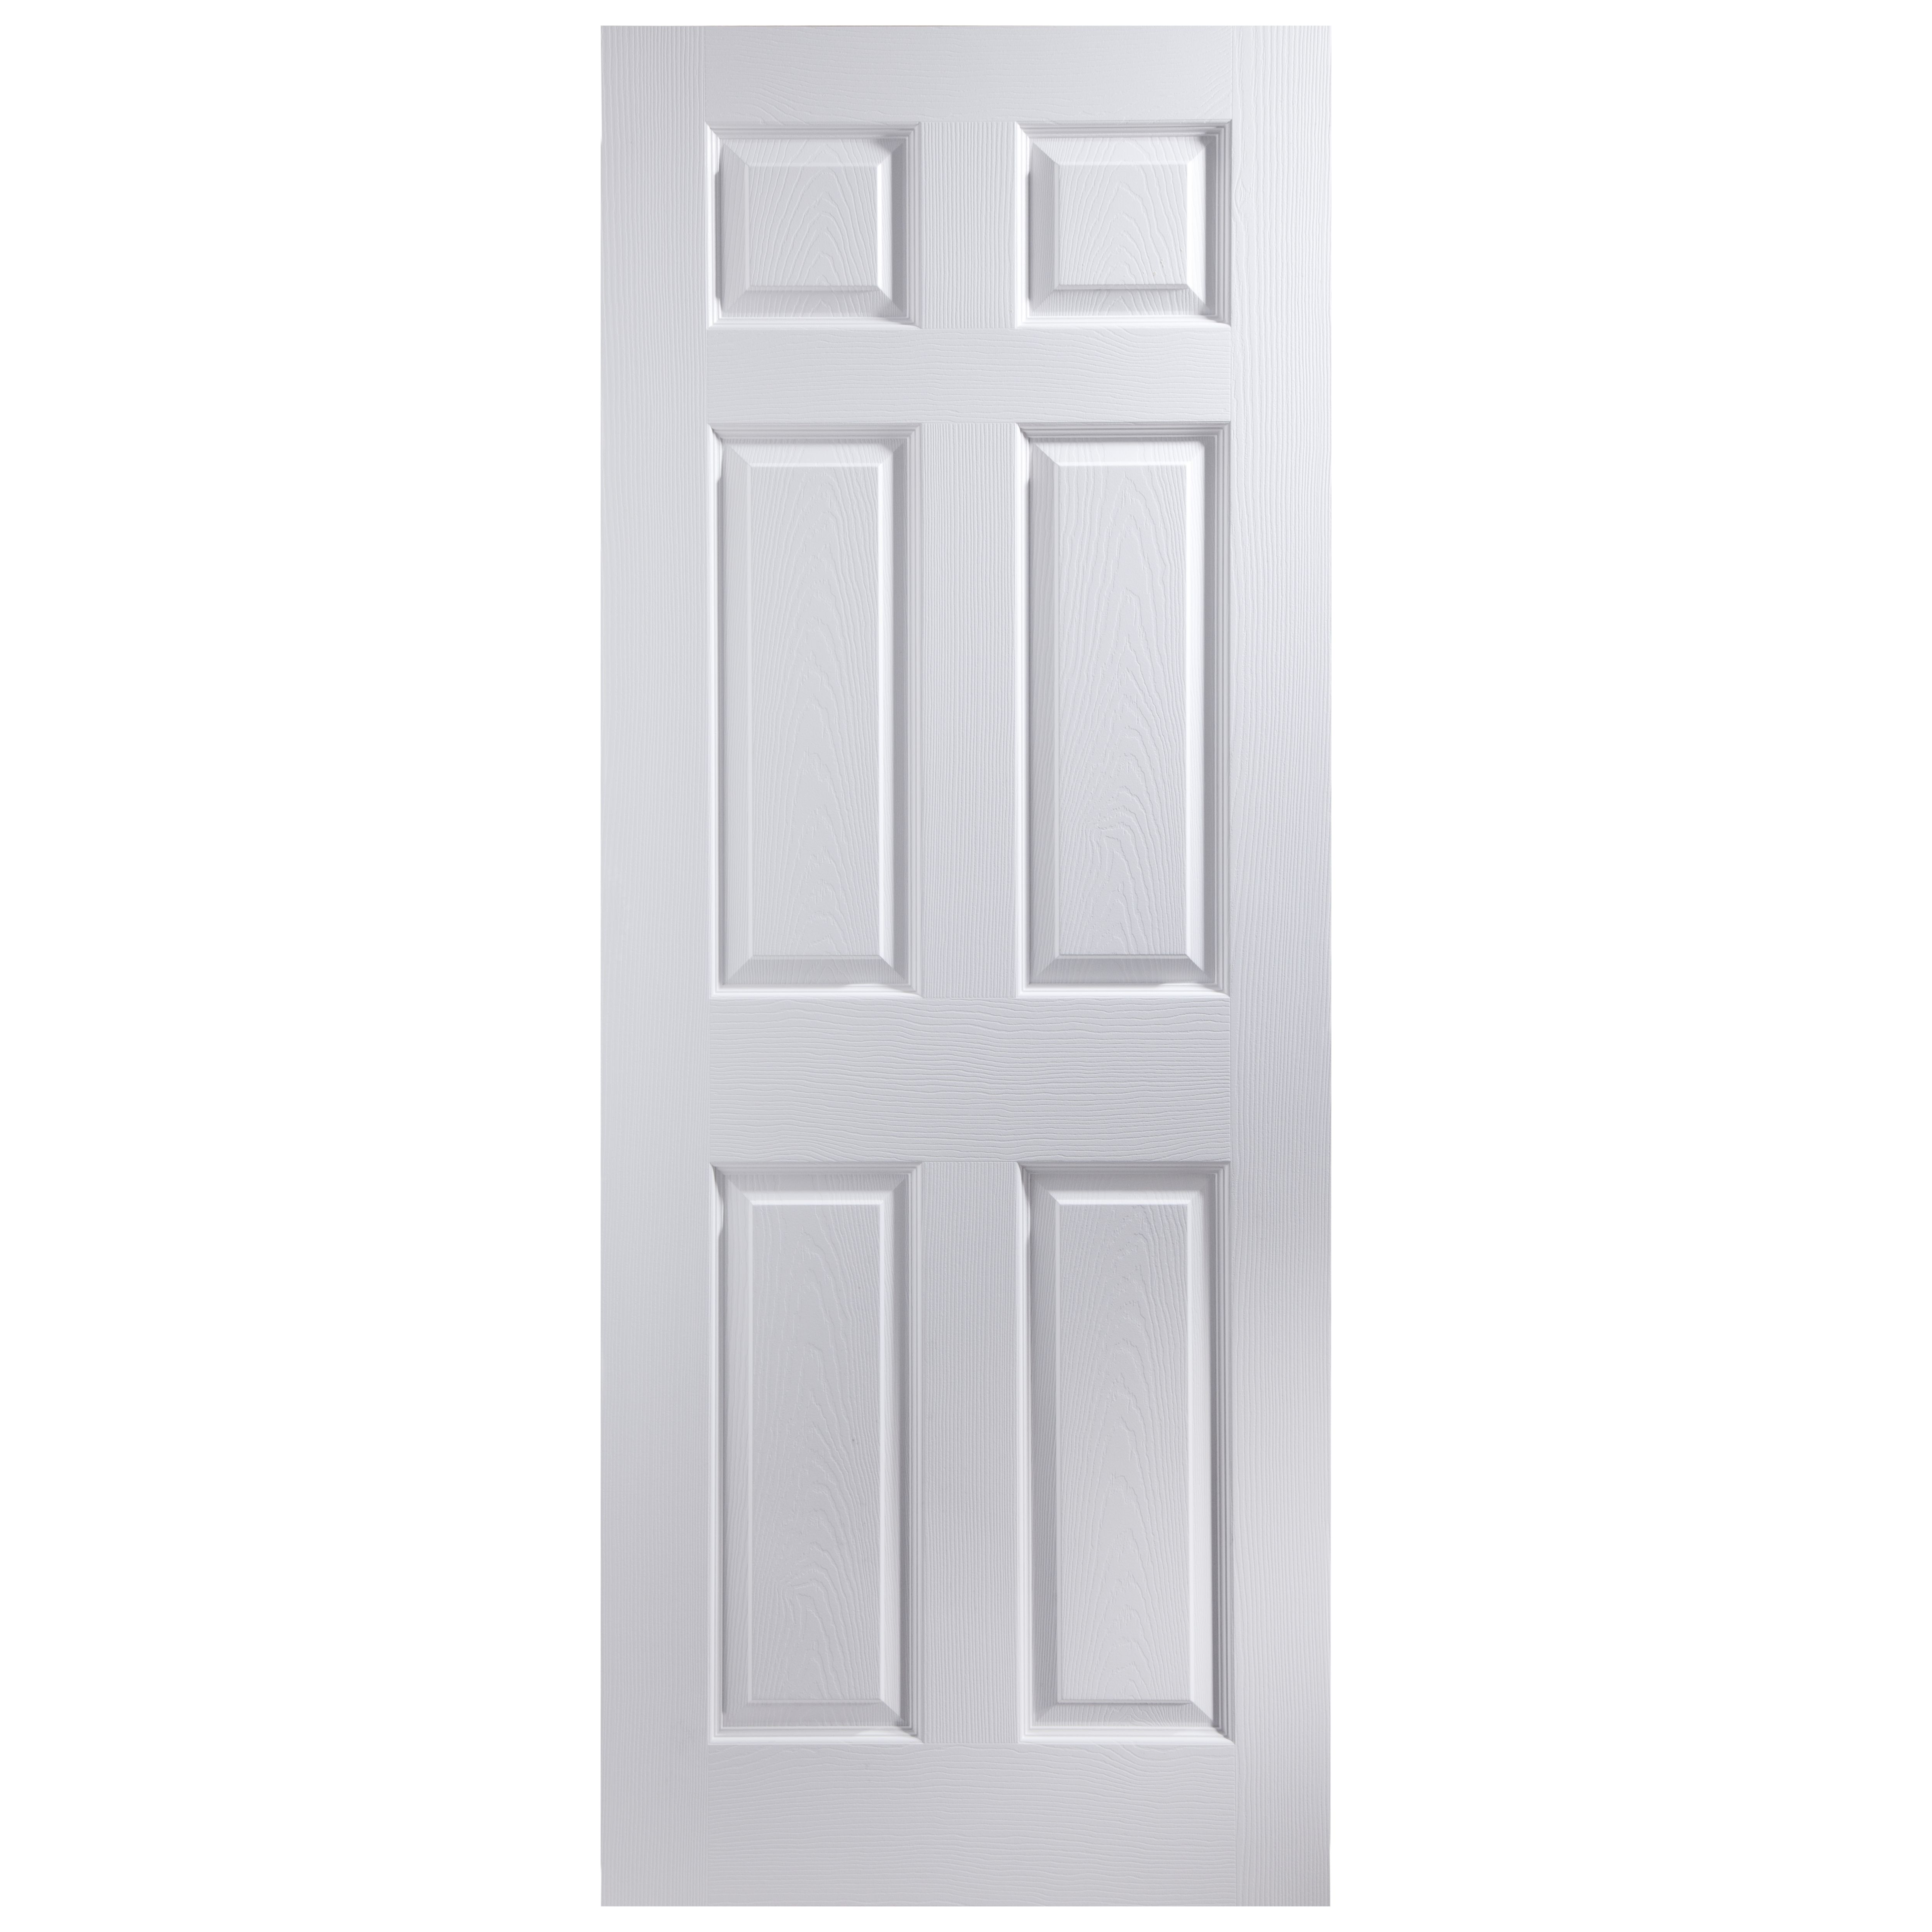 6 Panel Primed Woodgrain Internal Fire Door H 2040mm W